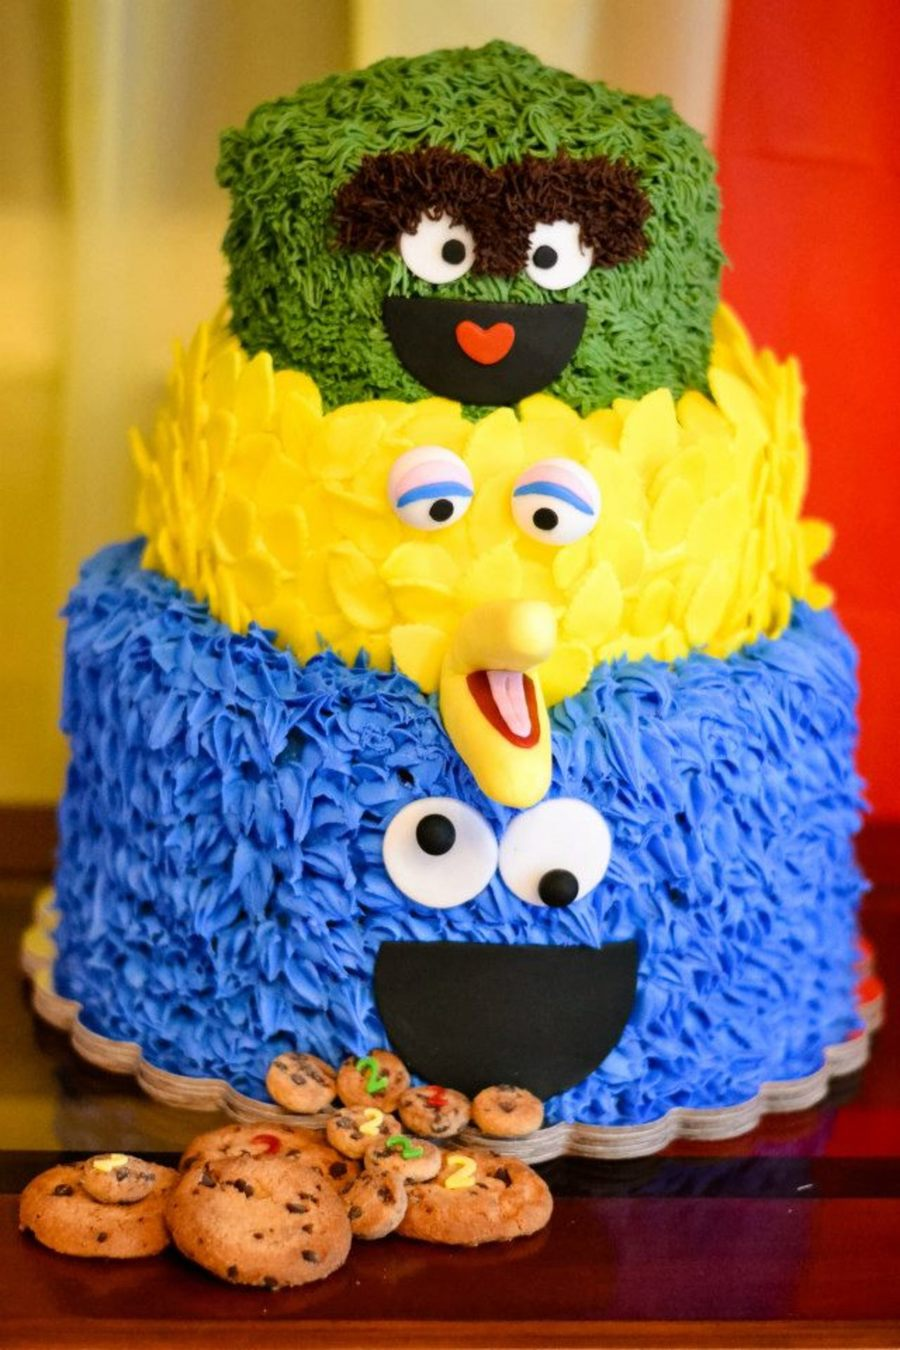 My Grandsons 2nd Birthday Party Sesame Street Theme Cookie Monster Is A Chocolate Chip Cake Buttercream With Fondant Accent Big Bird Vanilla